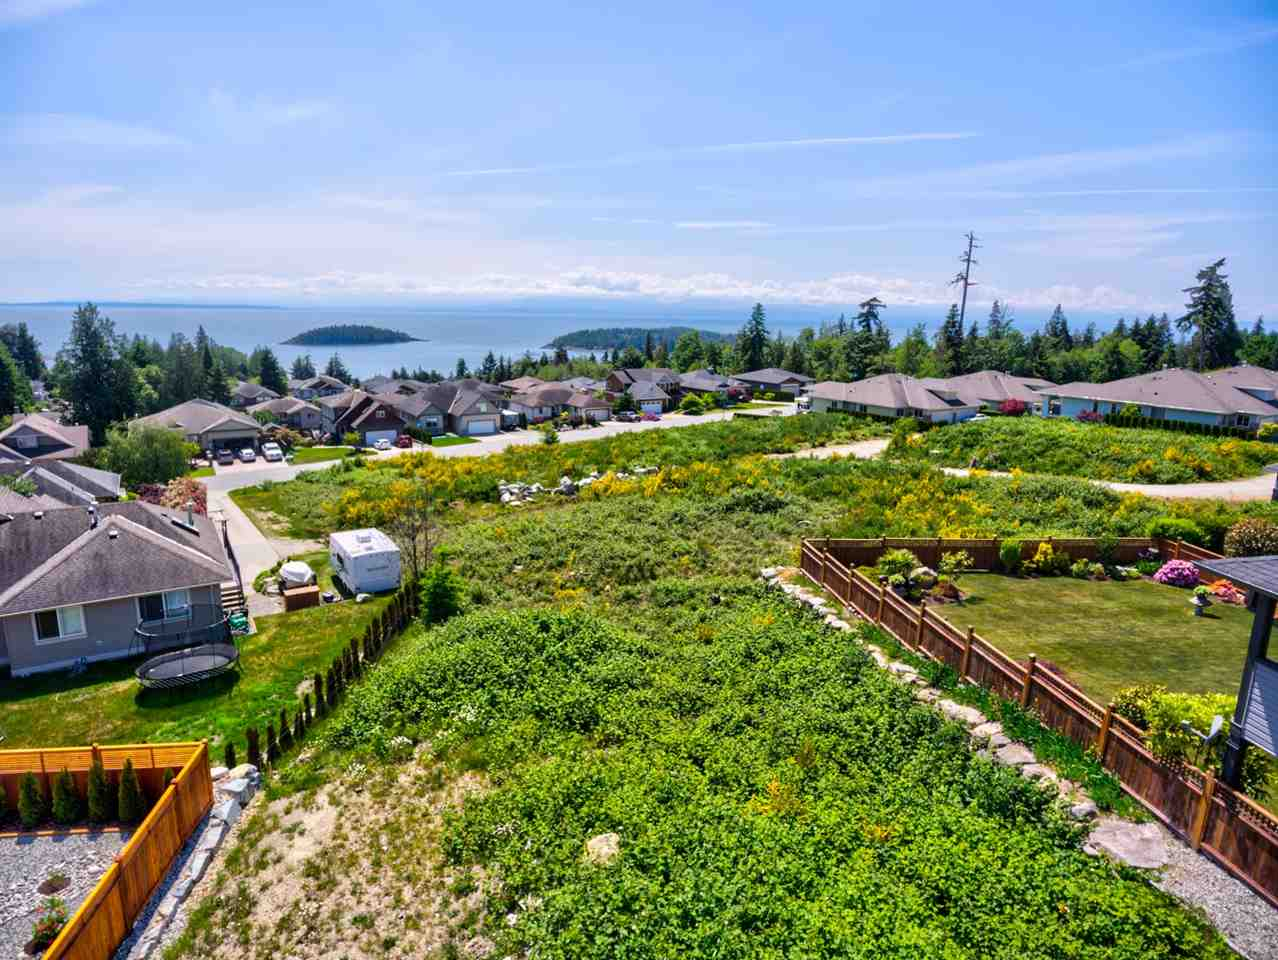 Spectacular ocean views overlooking the Georgia Strait & Trail Islands located in a popular West Sechelt neighbourhood of quality homes. This lot allows for a street level  entry home with beautiful ocean views and a walkout  basement to a sunny back yard. All underground services are in place nearby. Choose from any of the beach access?s within the area for some of the best swimming or hiking and biking trails. Shopping is nearby and just minutes from downtown Sechelt.